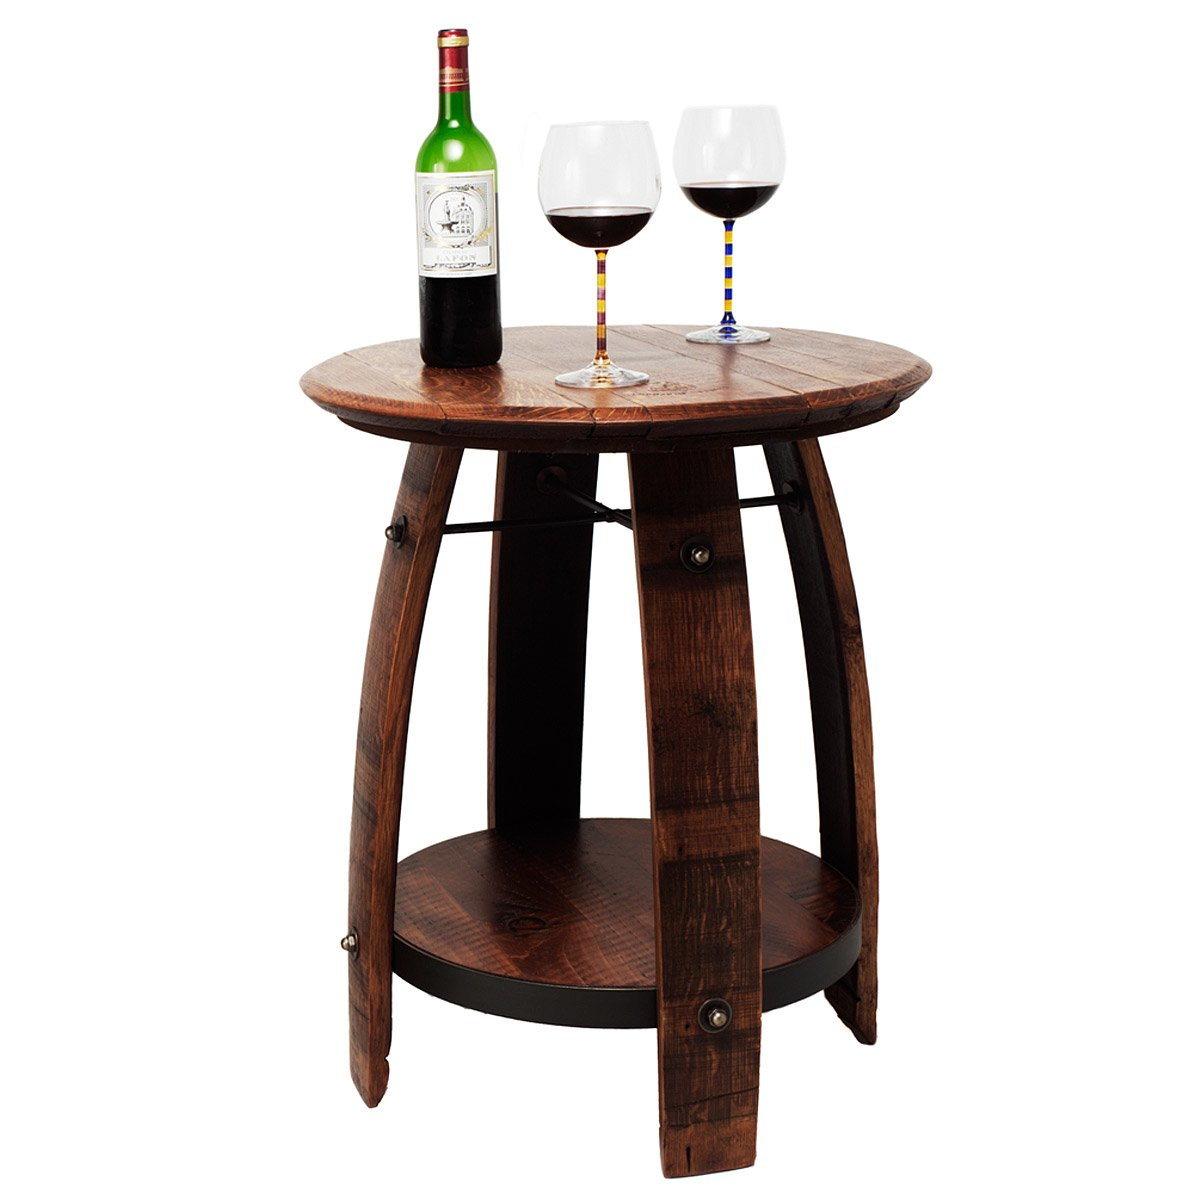 Recycled Wine Barrel Side Table. Unique Coffee   Dining Tables  Reclaimed Wood Tables   UncommonGoods